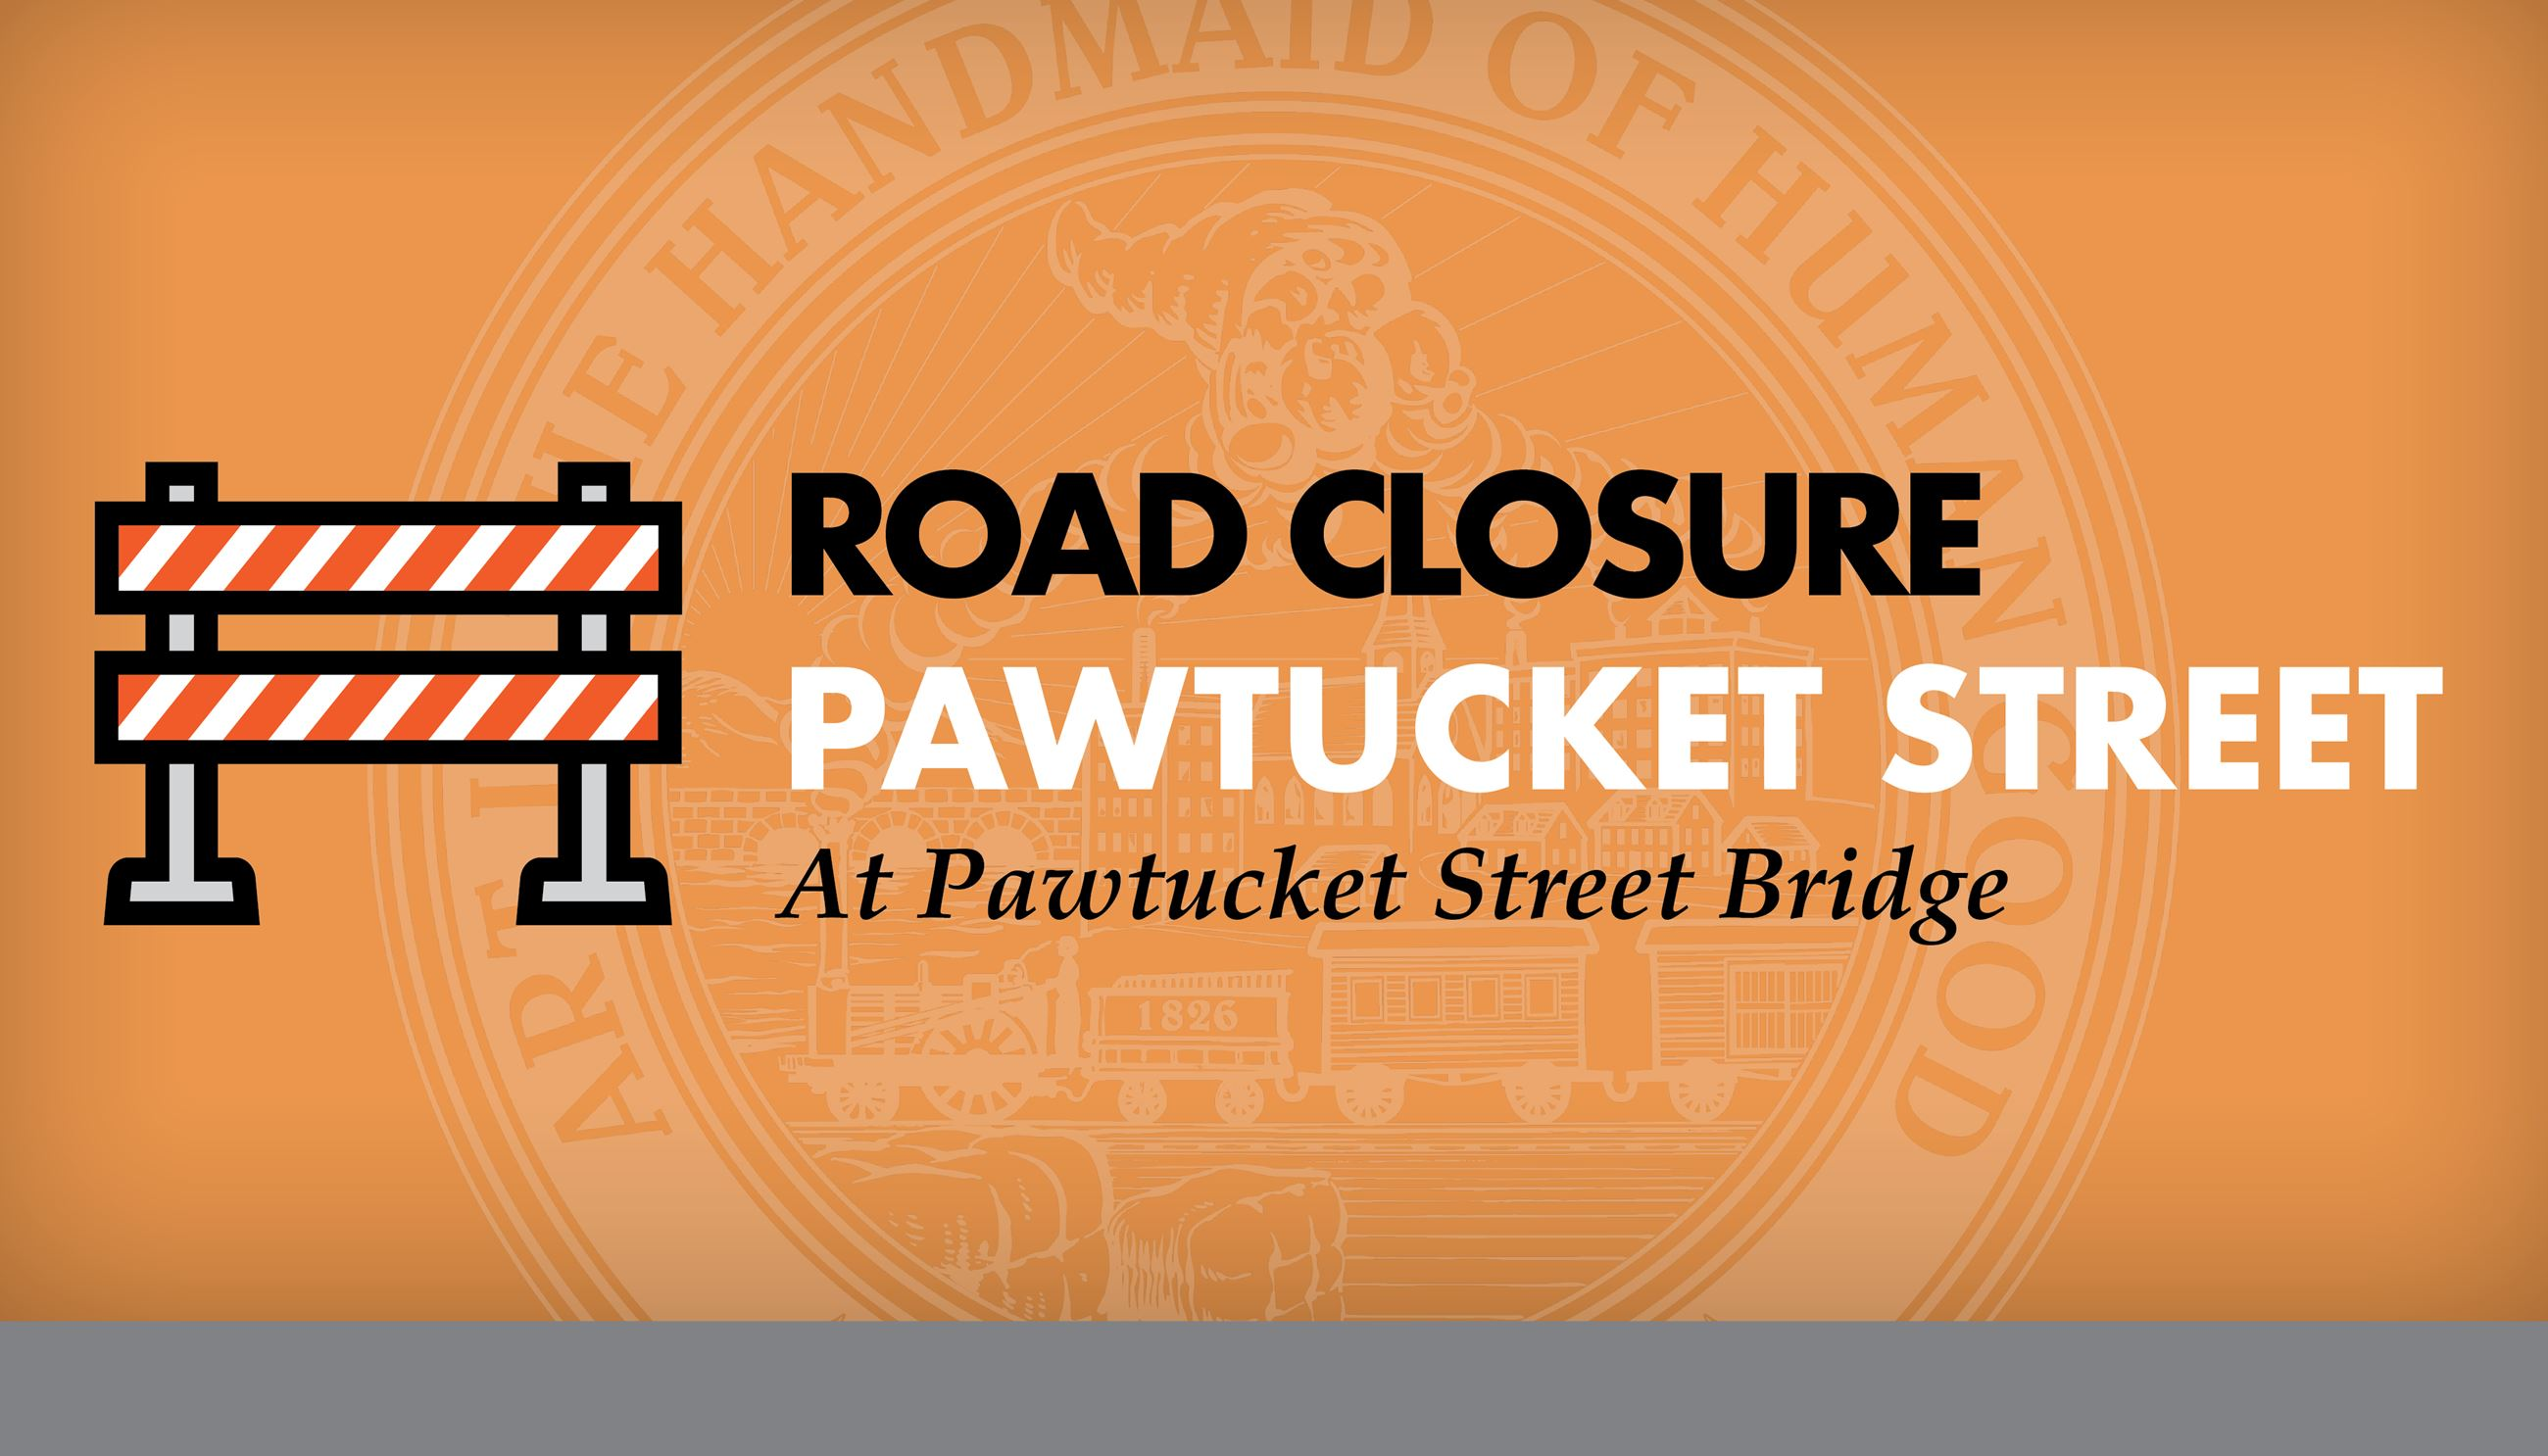 Pawtucket Street Closed